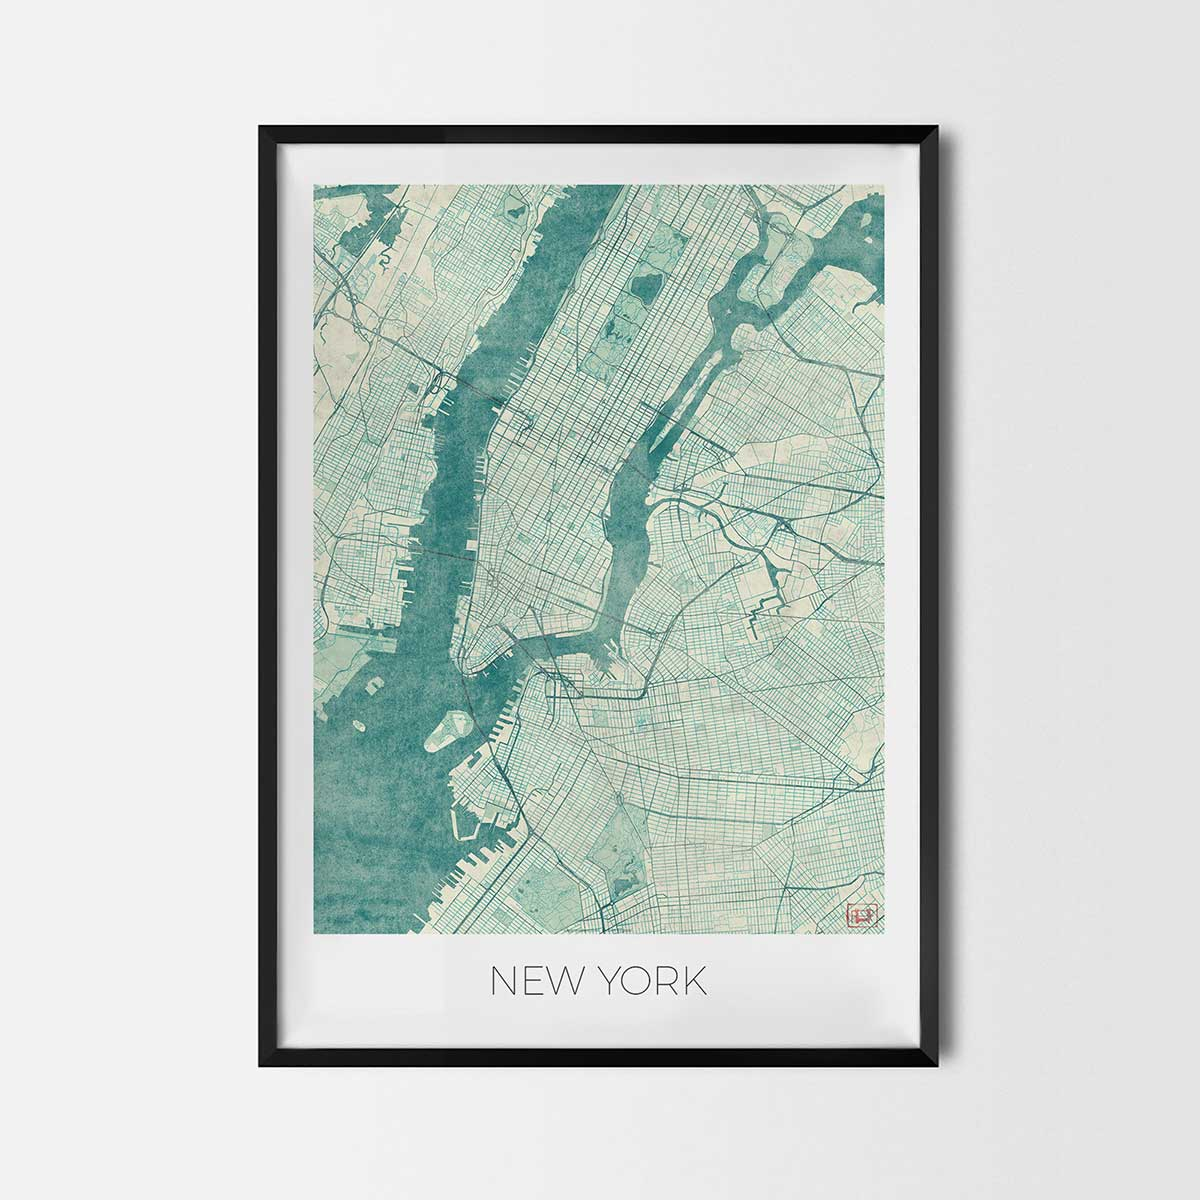 New York art posters   City Art Map Posters and Prints